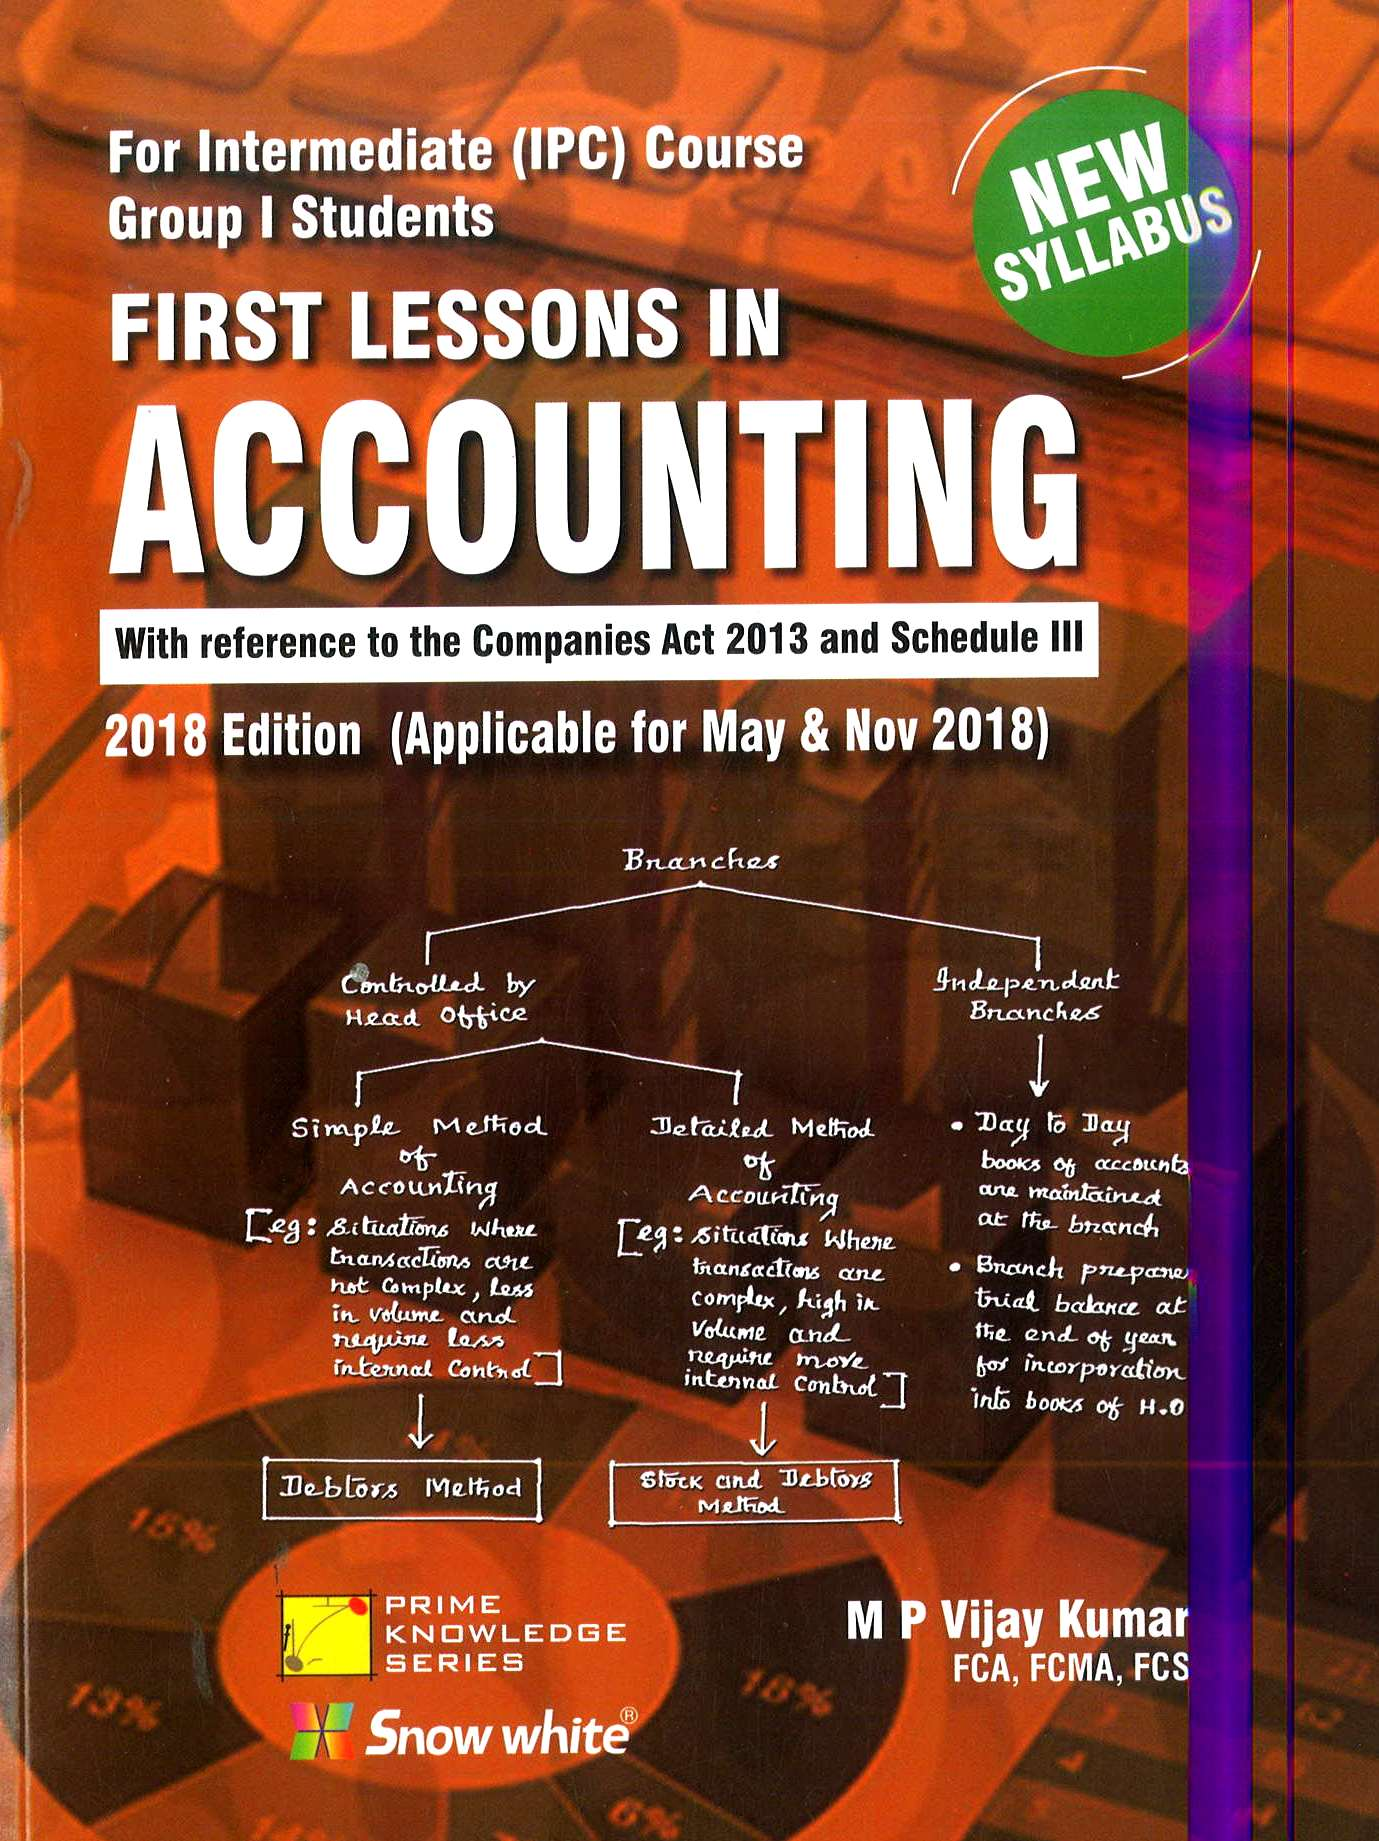 Snow White First Lessons In Accounting For CA IPCC Group 1 New Syllabus By M. P. Vijay Kumar Applicable for May 2018 Exam